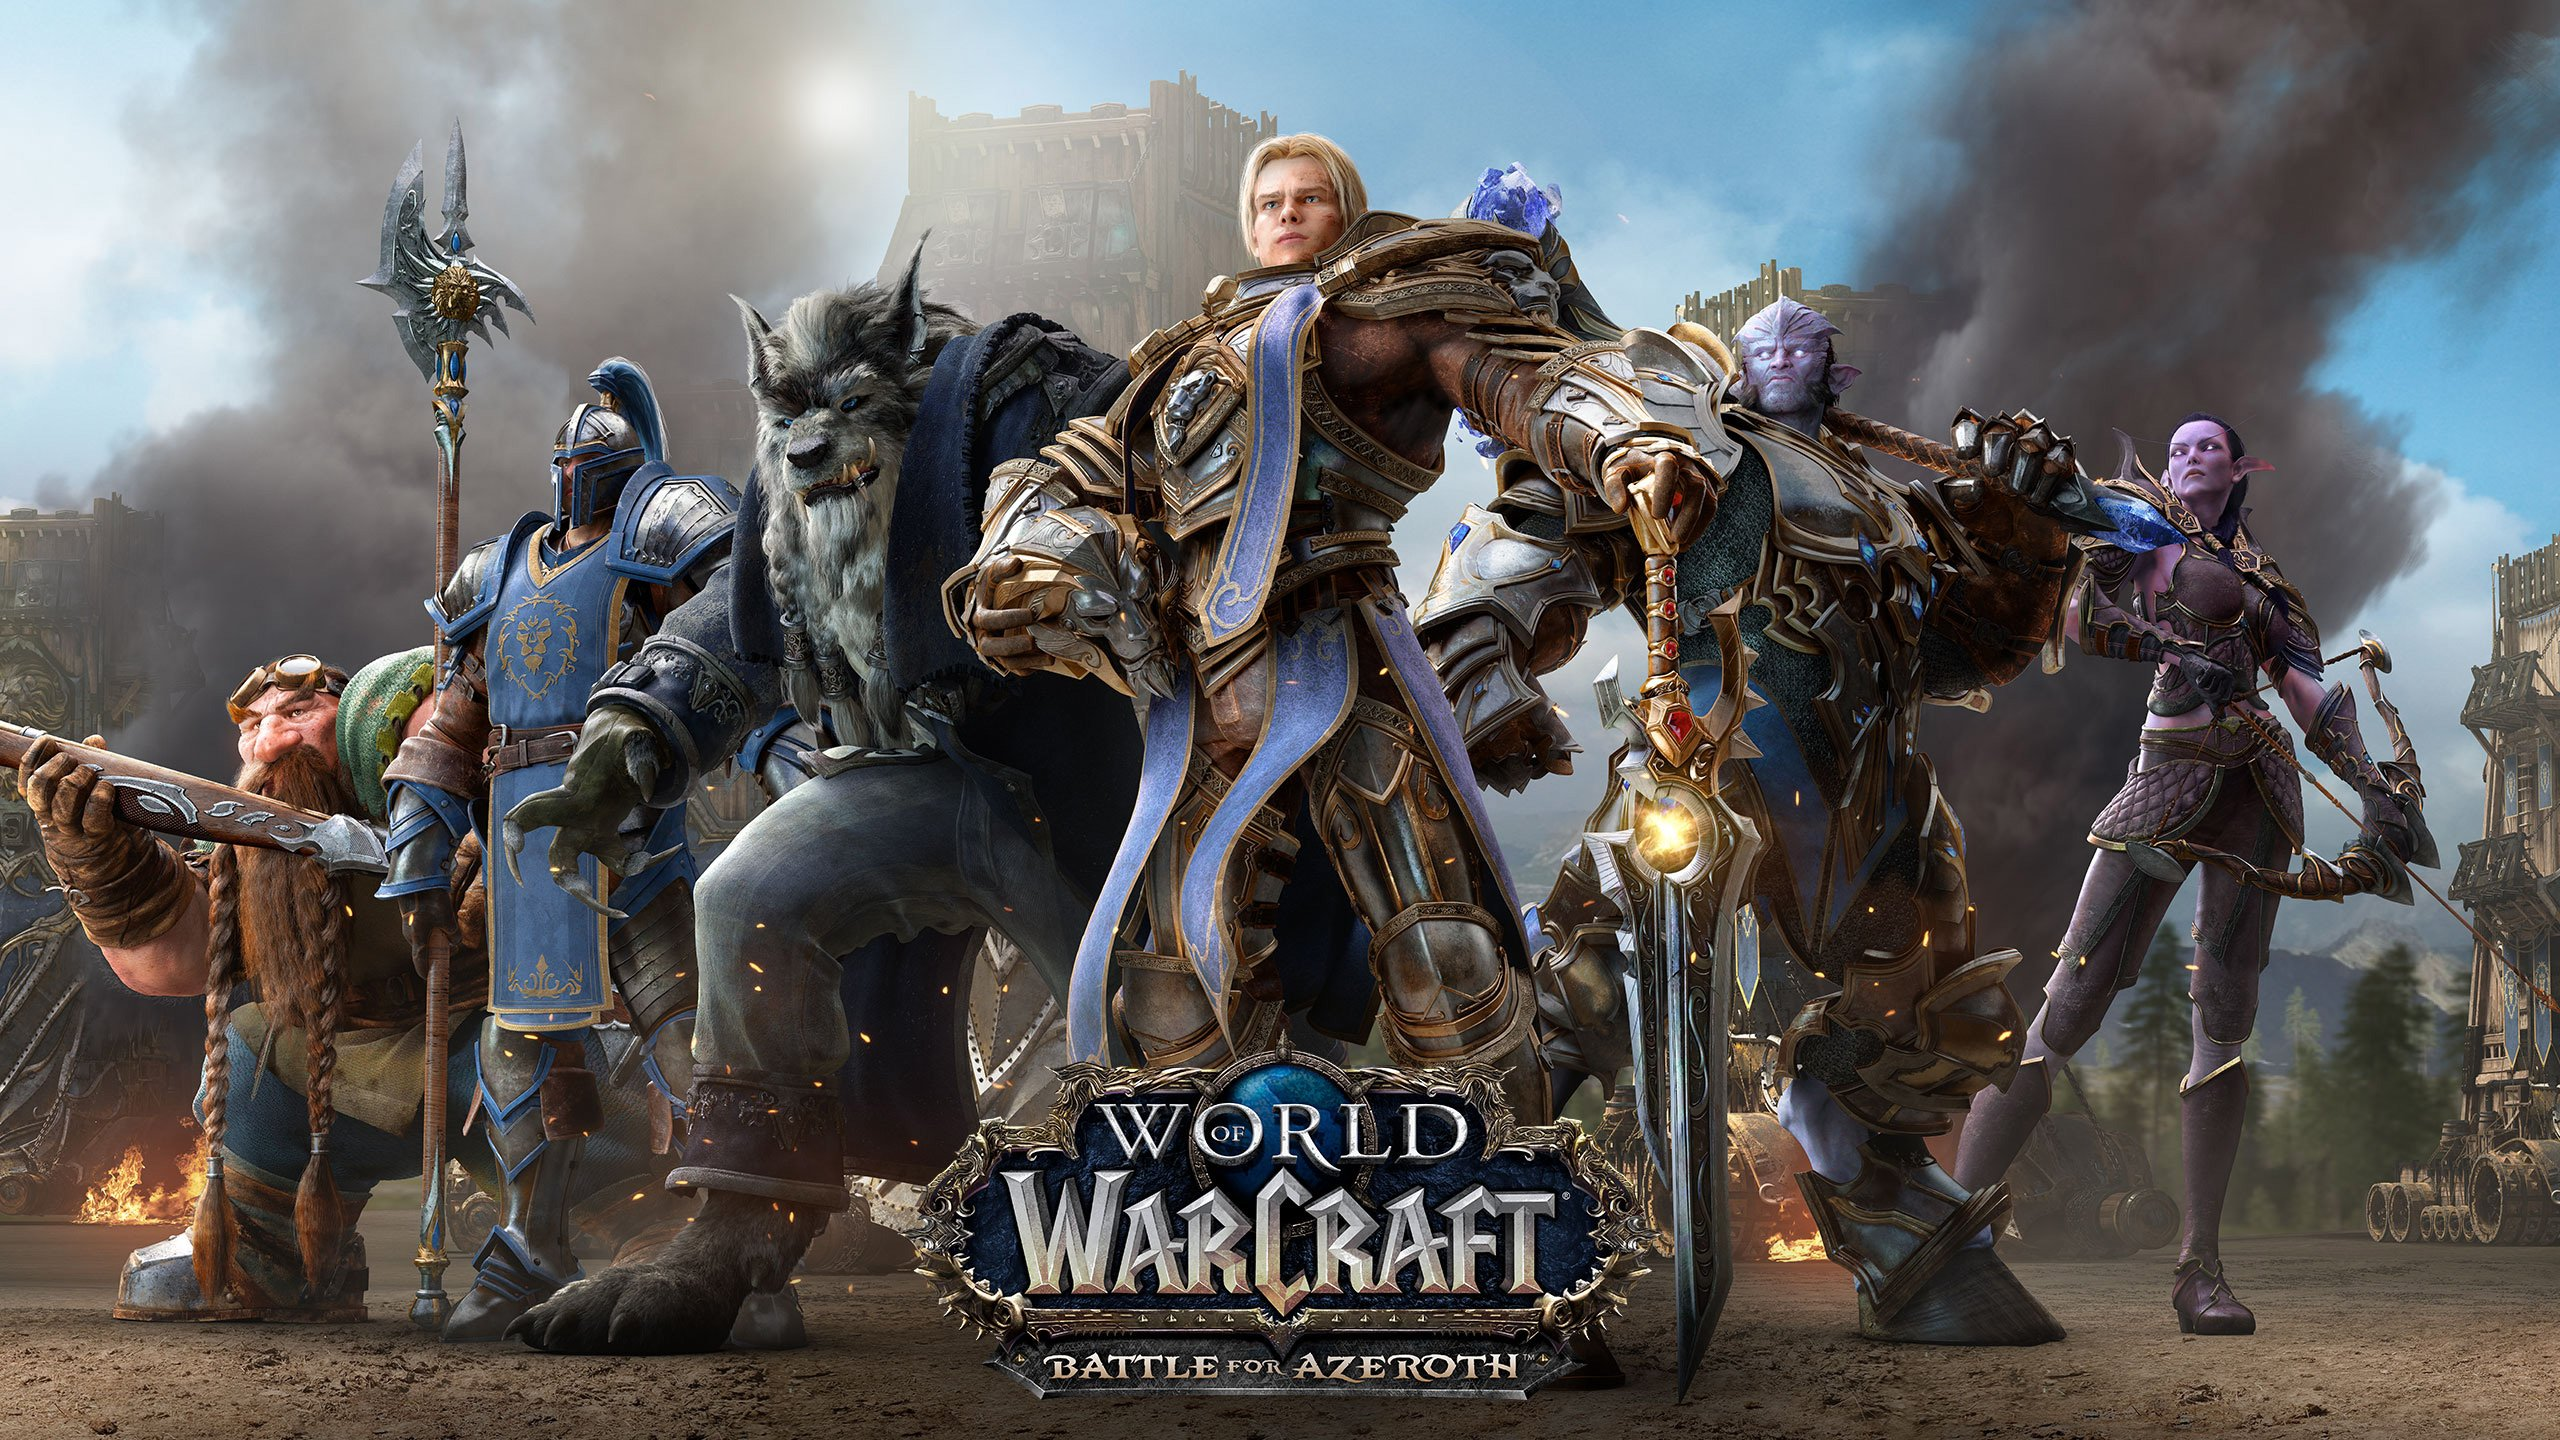 World Of Warcraft Wallpaper Bfa: Battle For Azeroth Pre-Purchase Now Available